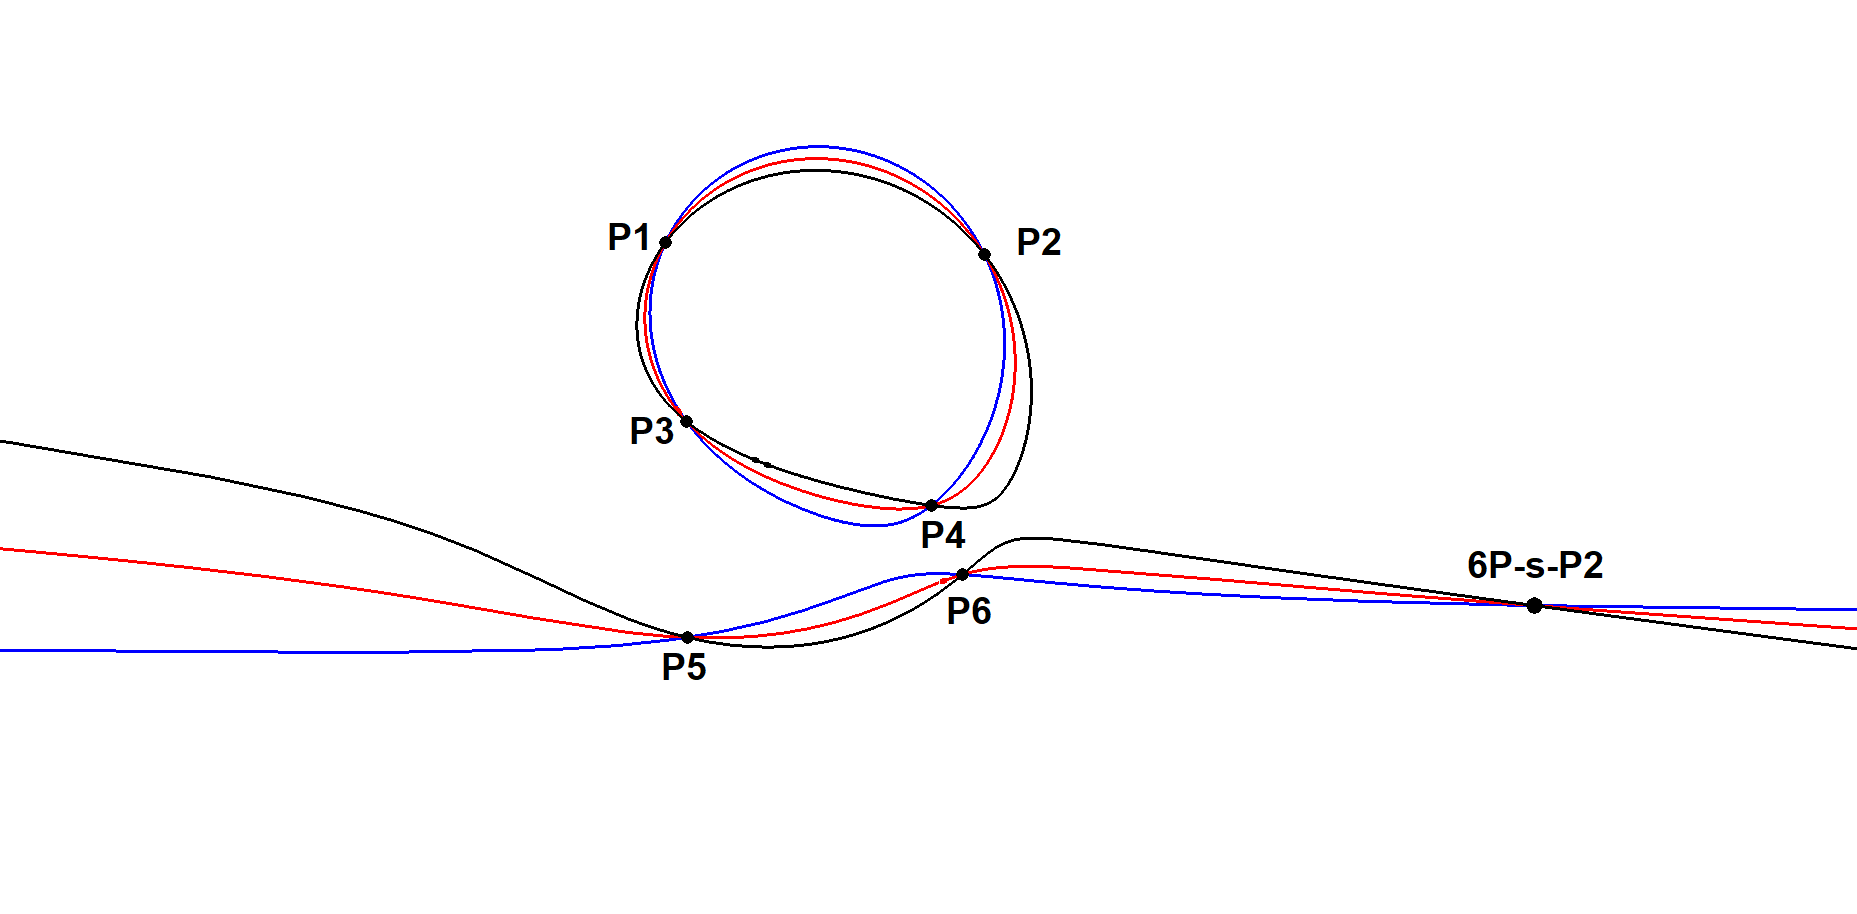 6P s P2 CB Point of a Circular Cubic 01